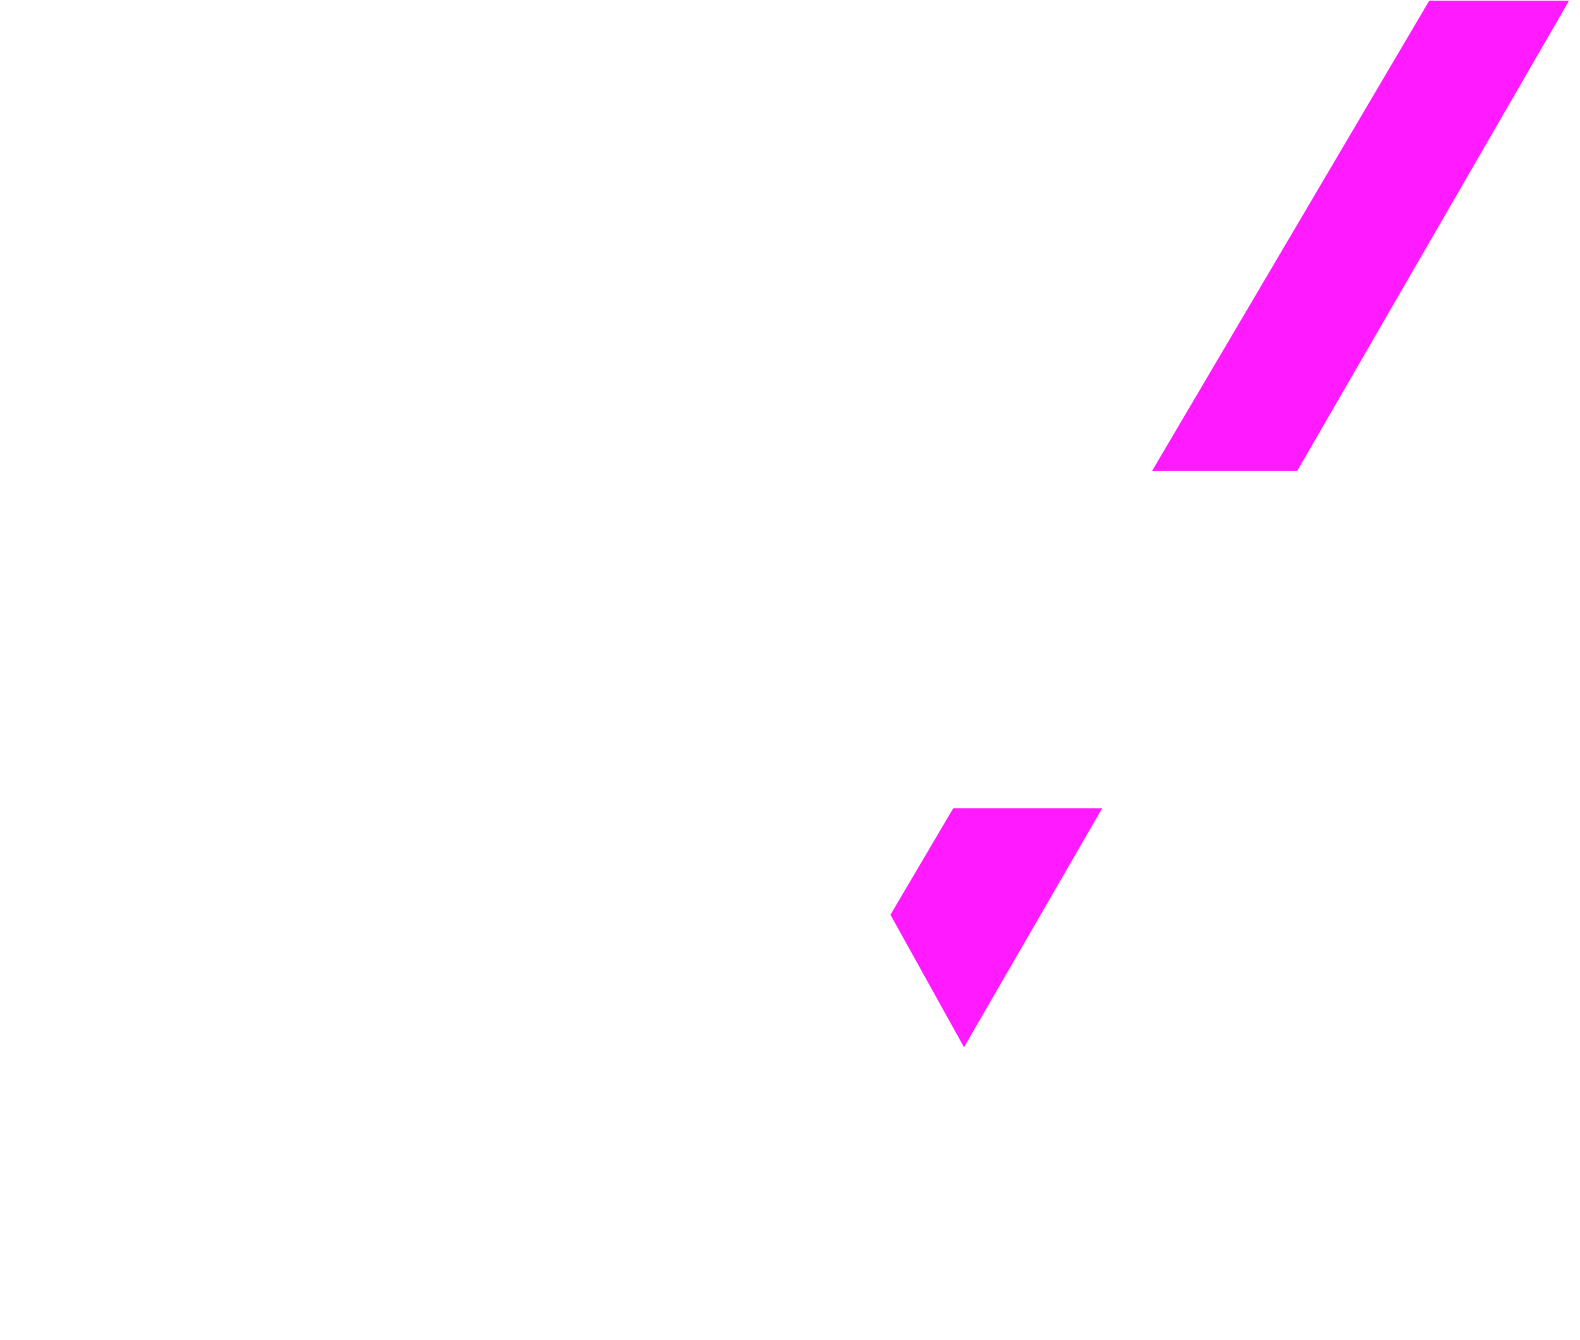 The Pursuit Conference